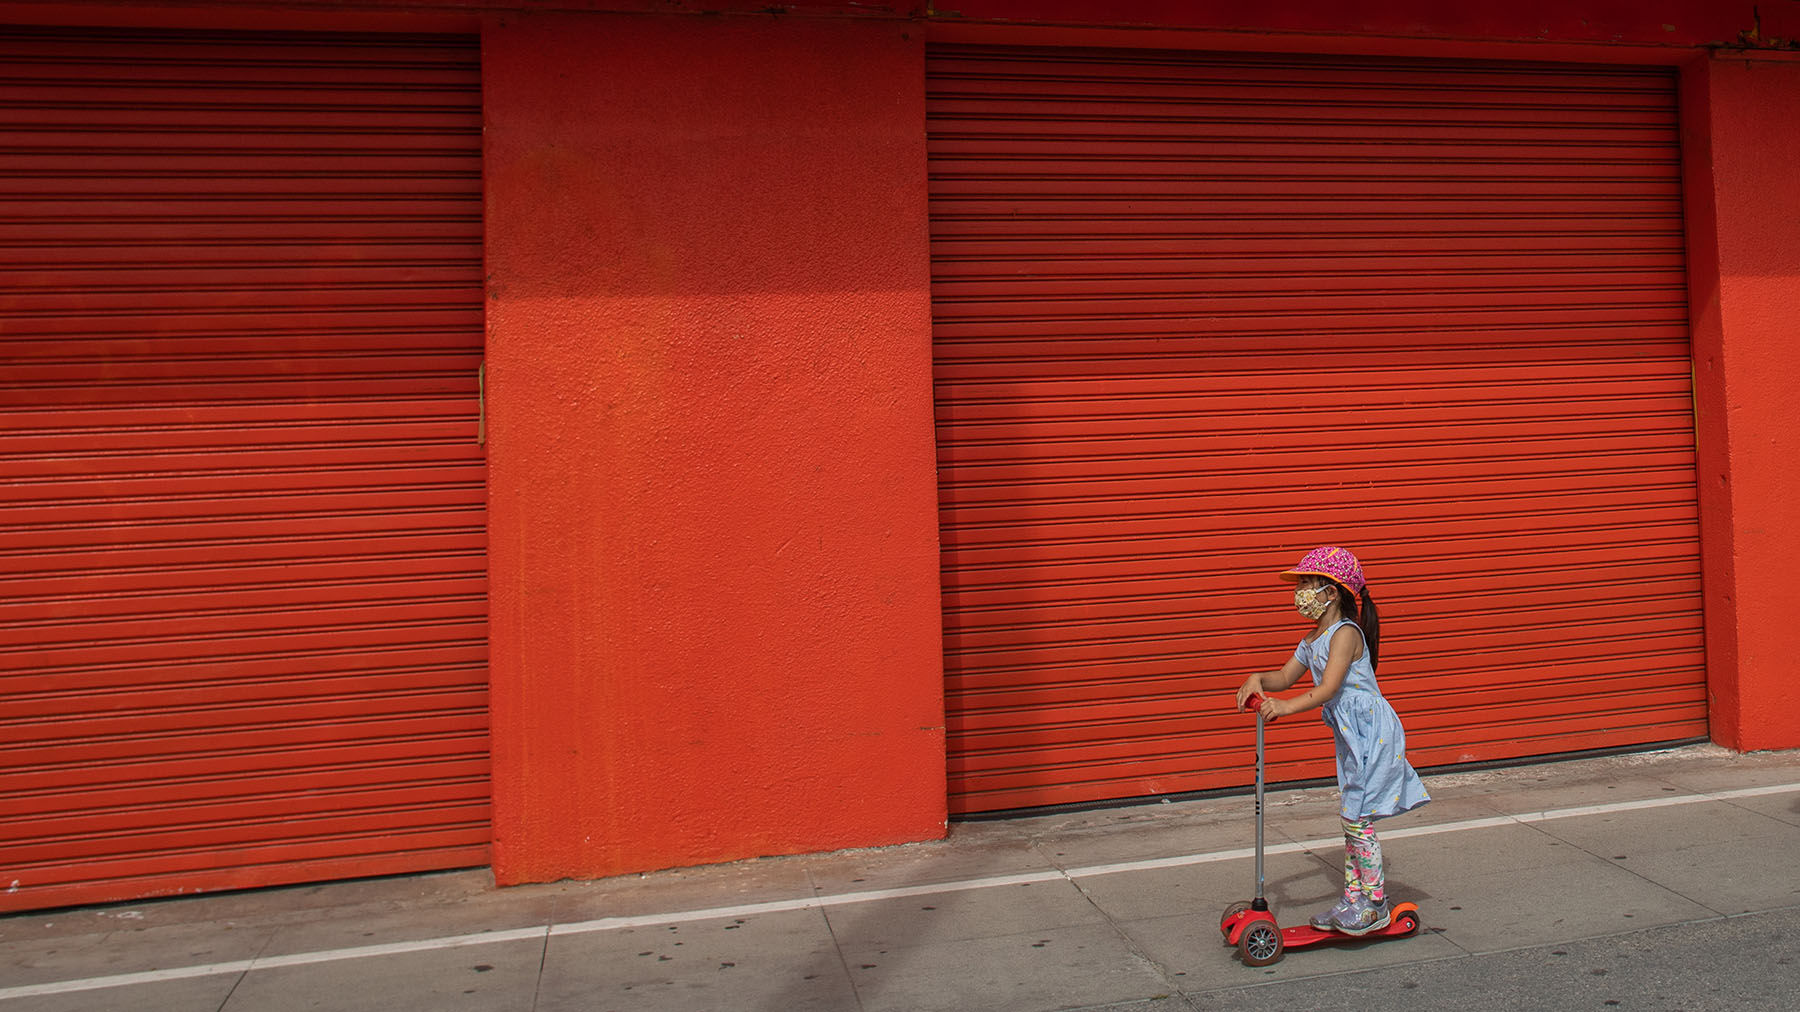 A young girl rides a scooter by the closed stores of the Boardwalk in Venice, California, during the coronavirus pandemic. Many mental health providers are working to reach children that have been impacted by school closures, including providers at health centers connected to nearby schools. (Photo by Apu Gomes/ AFP)